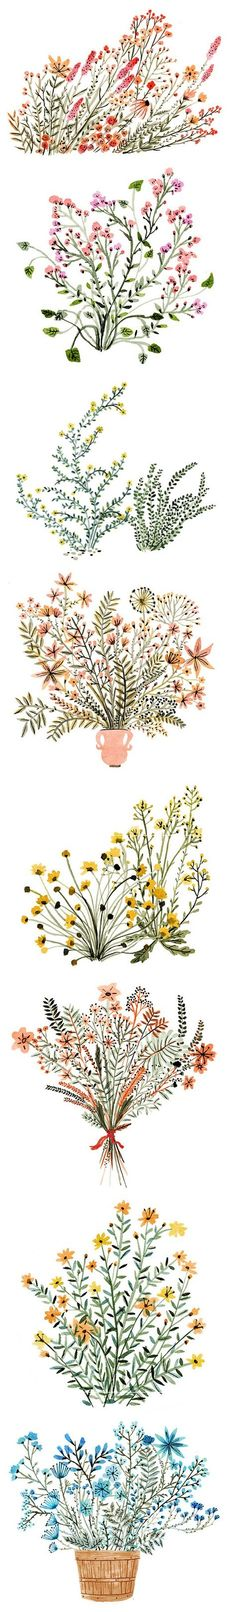 Dainty watercolor flowers, by Vikki Chu  #art #journal #little_book